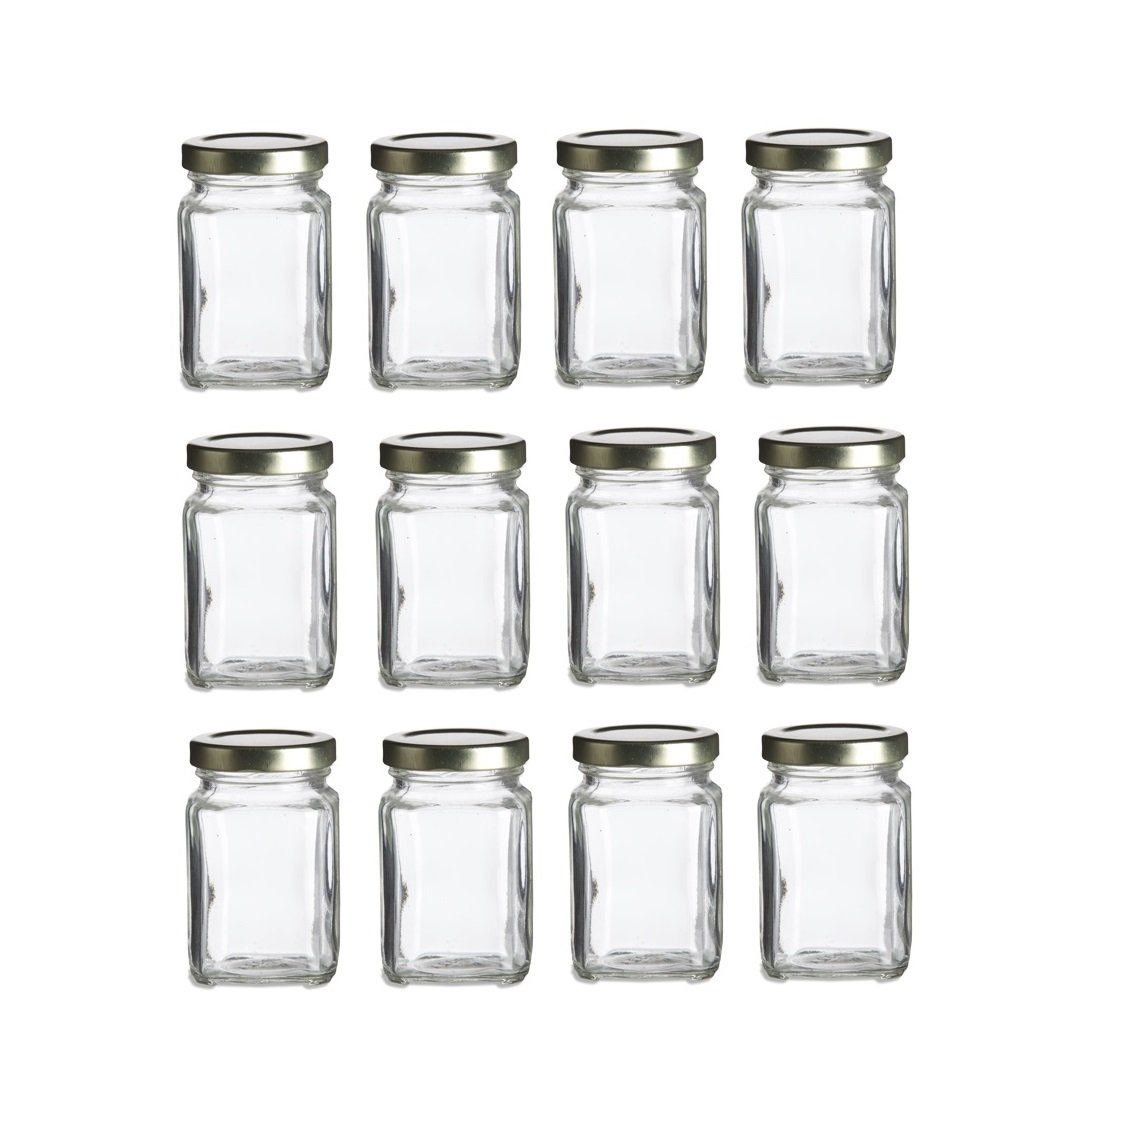 Nakpunar 12 pcs, 3.75 oz Mini Square Glass Jars for Jam, Honey ...